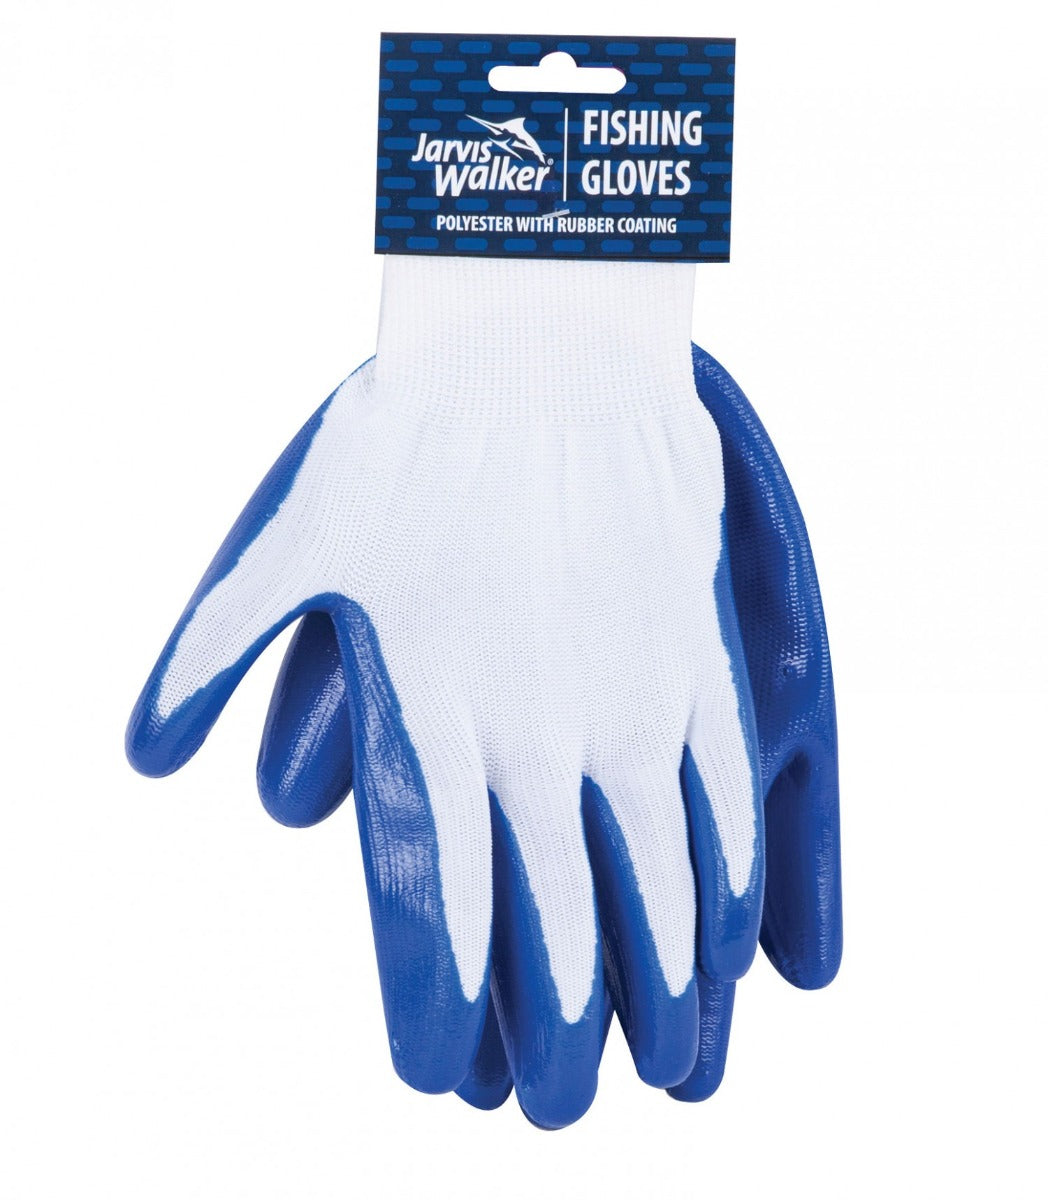 Jarvis Walker Blue Fishing Gloves